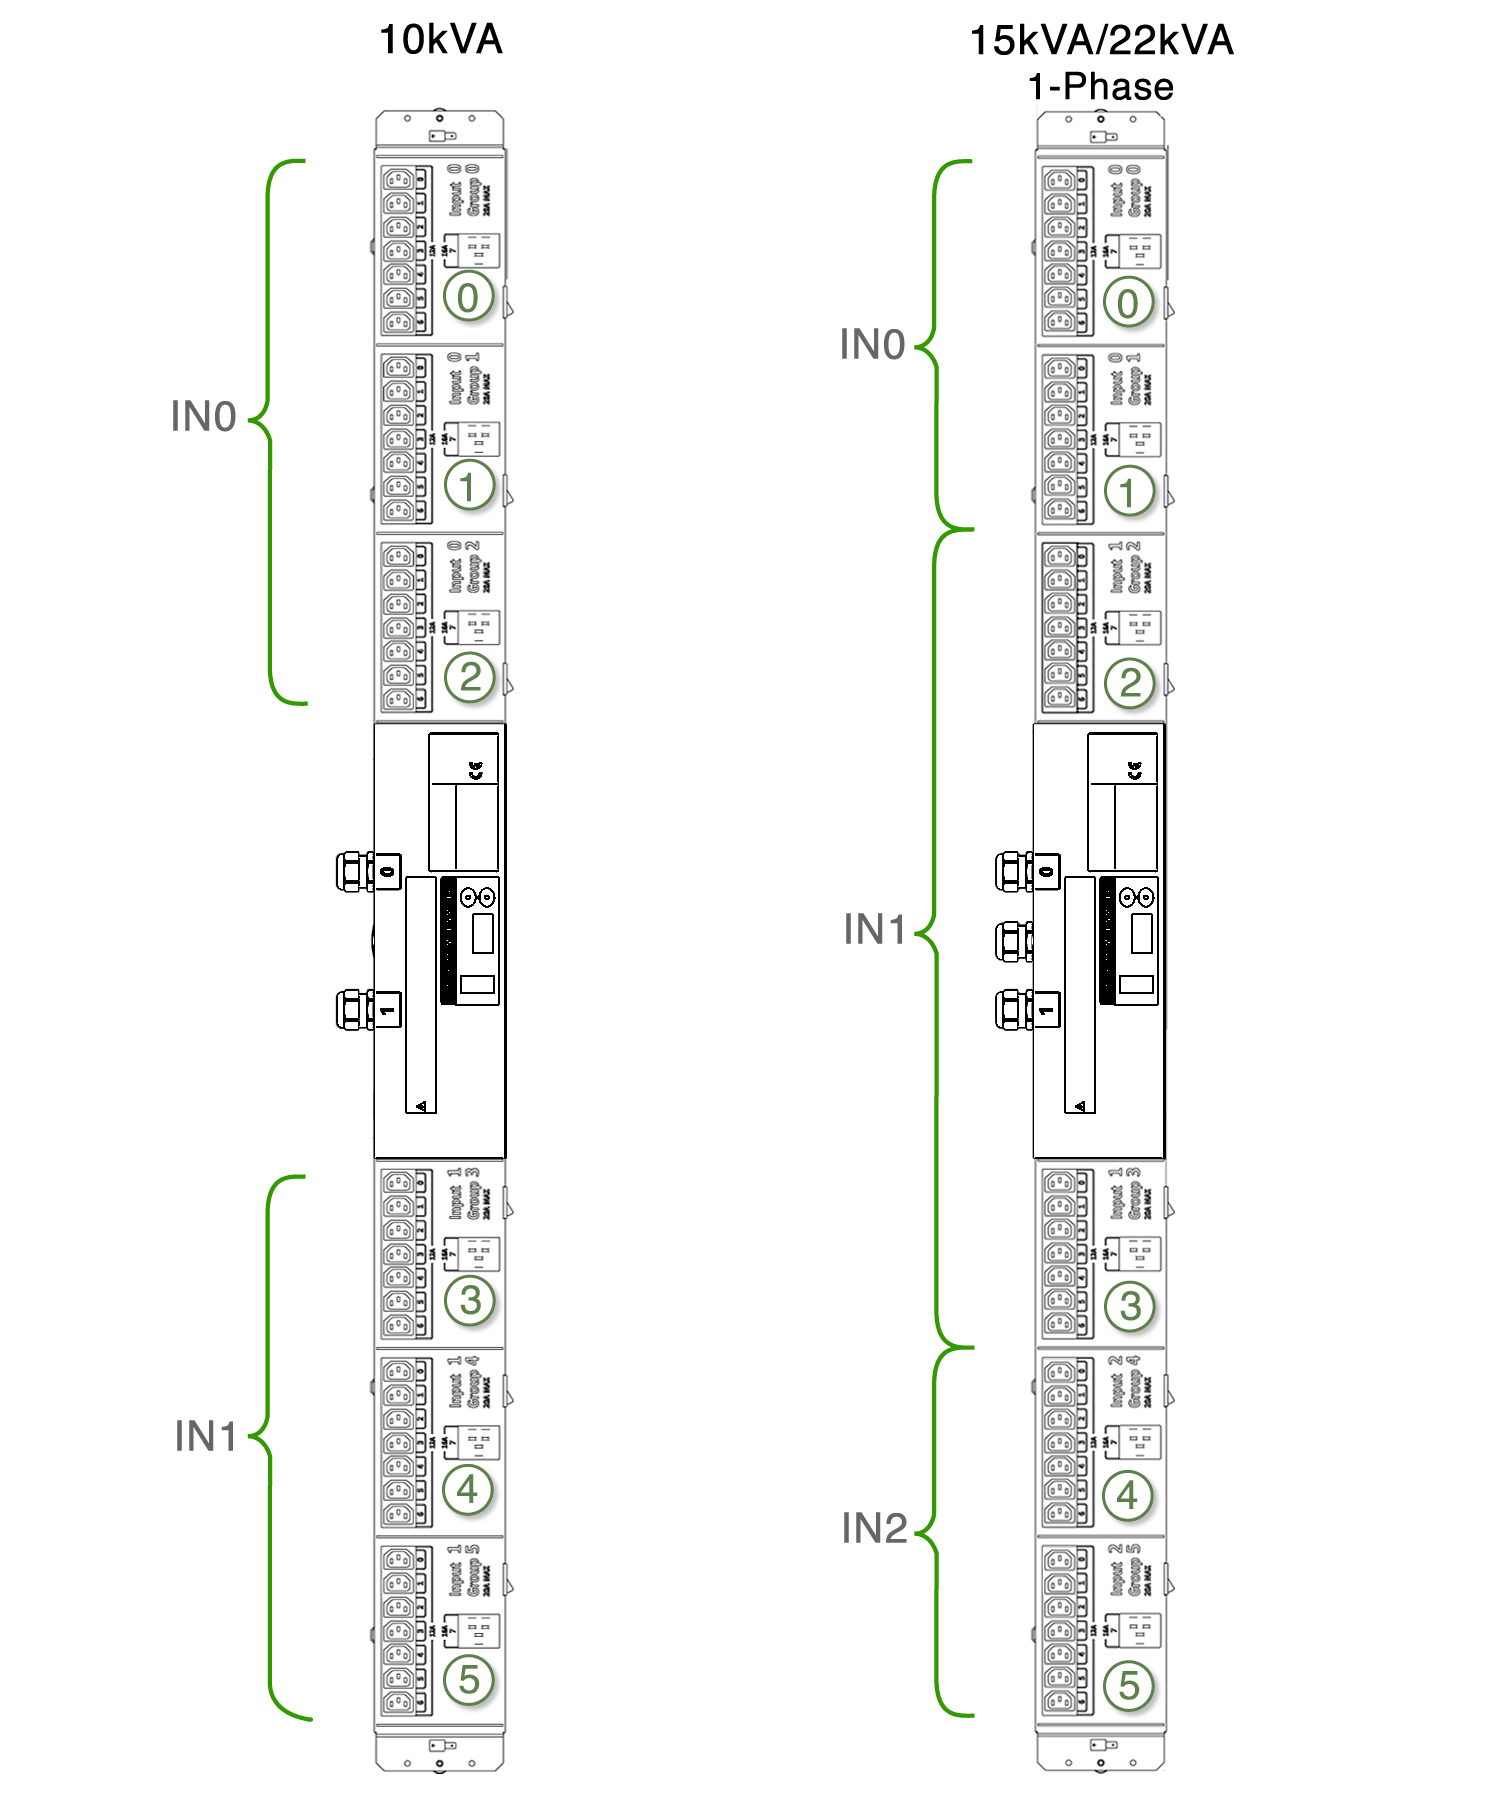 Single Phase Pdu Input And Outlet Group Relationship